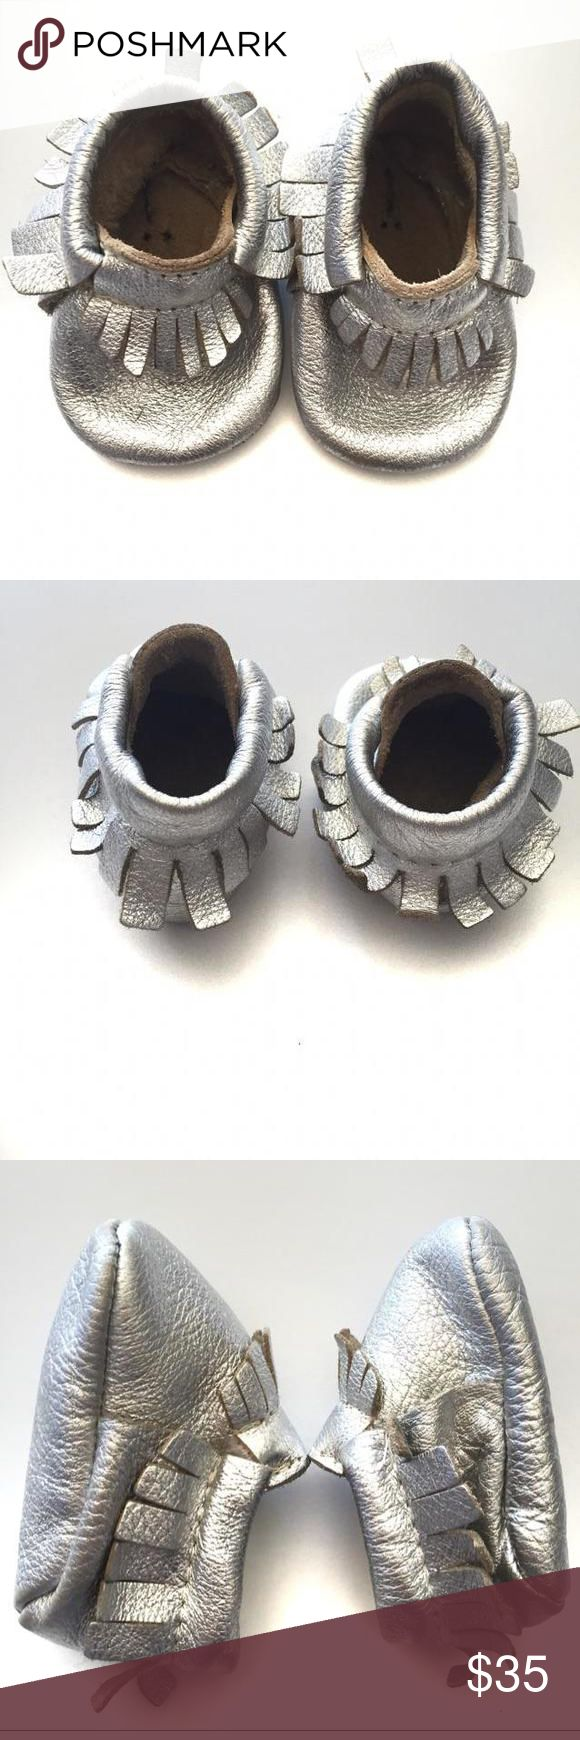 Freshly Picked Leather Mocassins These metallic mocassins are soft soled and made from 100% durable, wear-tested leather.  The elastic opening makes it easy to put it on and take it off, but will stay on your infant's foot. So chic!! Freshly Picked Shoes